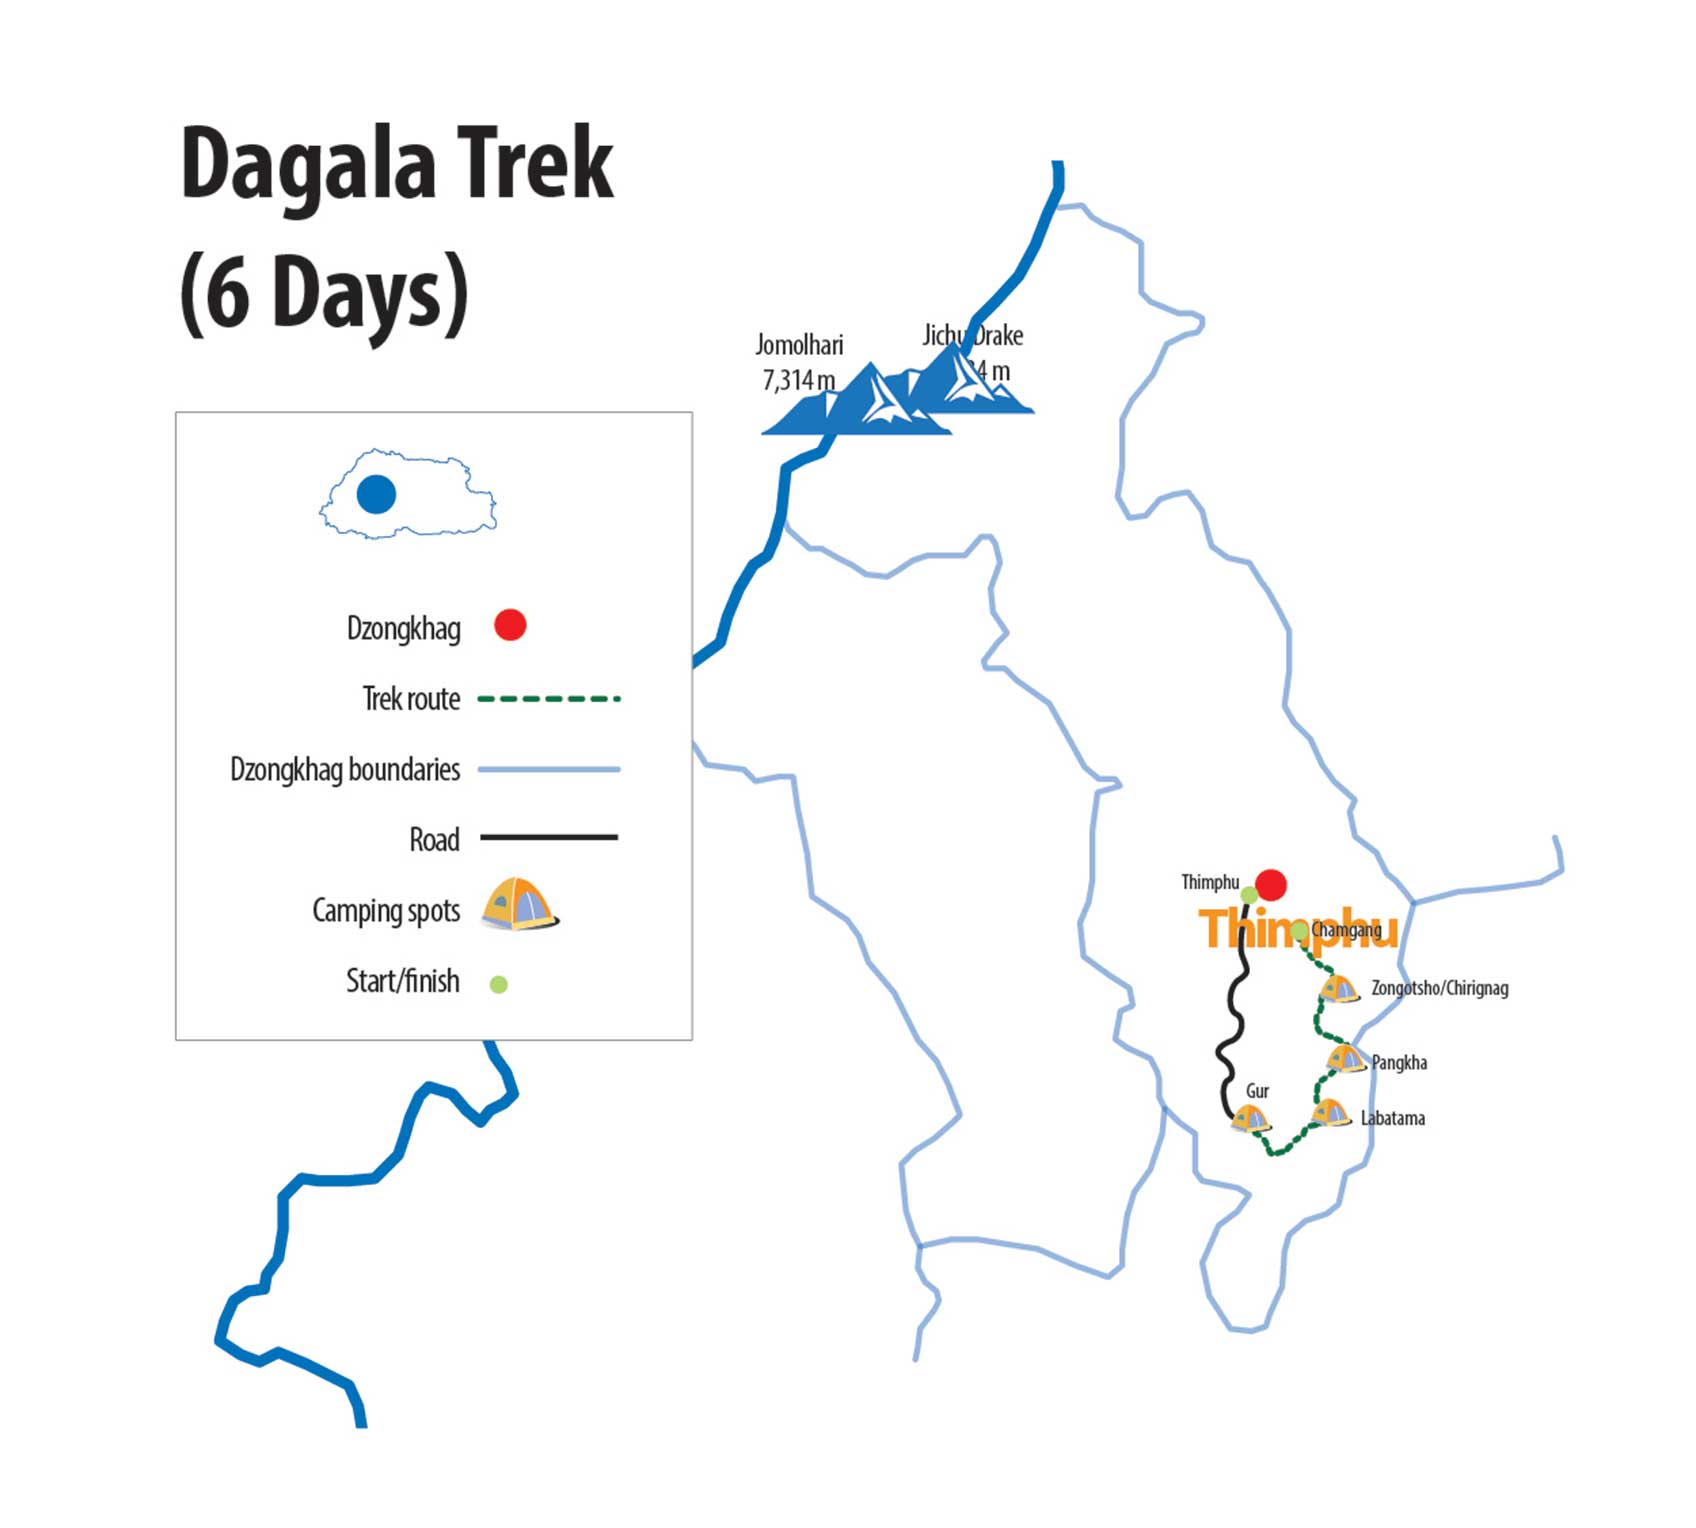 Dagala Trek Route Map